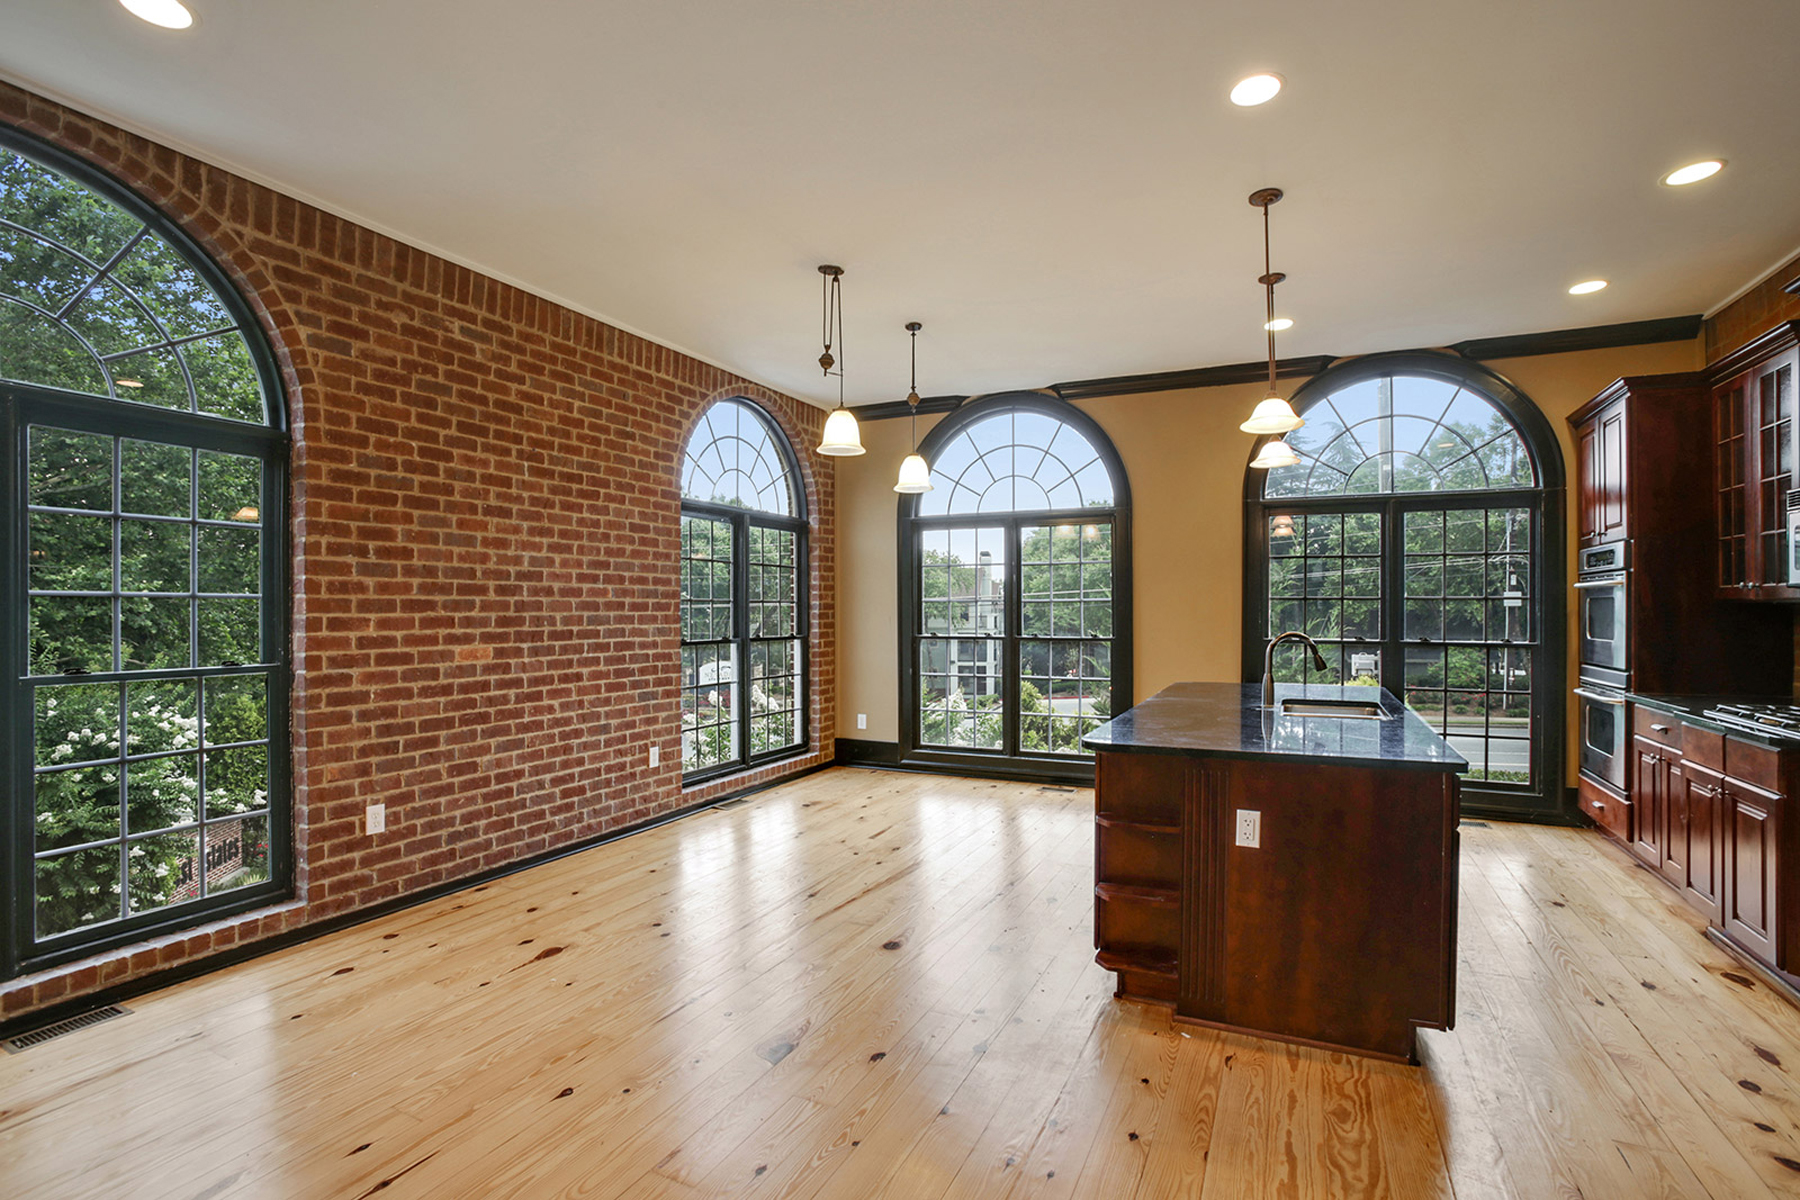 Townhouse for Sale at Stunning move in ready townhome inside the perimeter. 5512 Glenridge Drive Unit A Sandy Springs, Georgia, 30342 United States